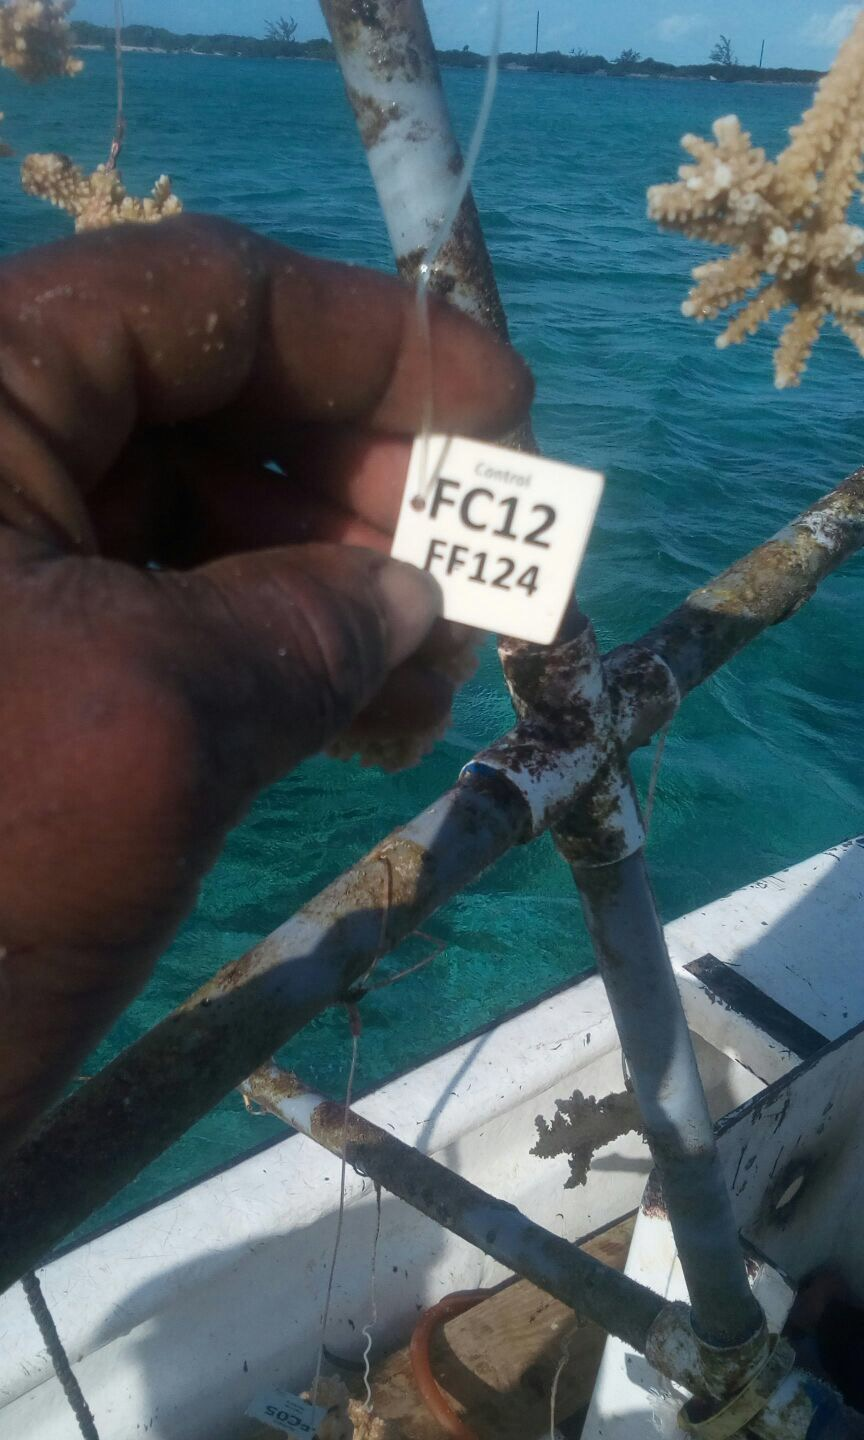 A fisherman in the Bahamas found a coral tree from St. Thomas that was swept away during Hurricanes Irma or Maria